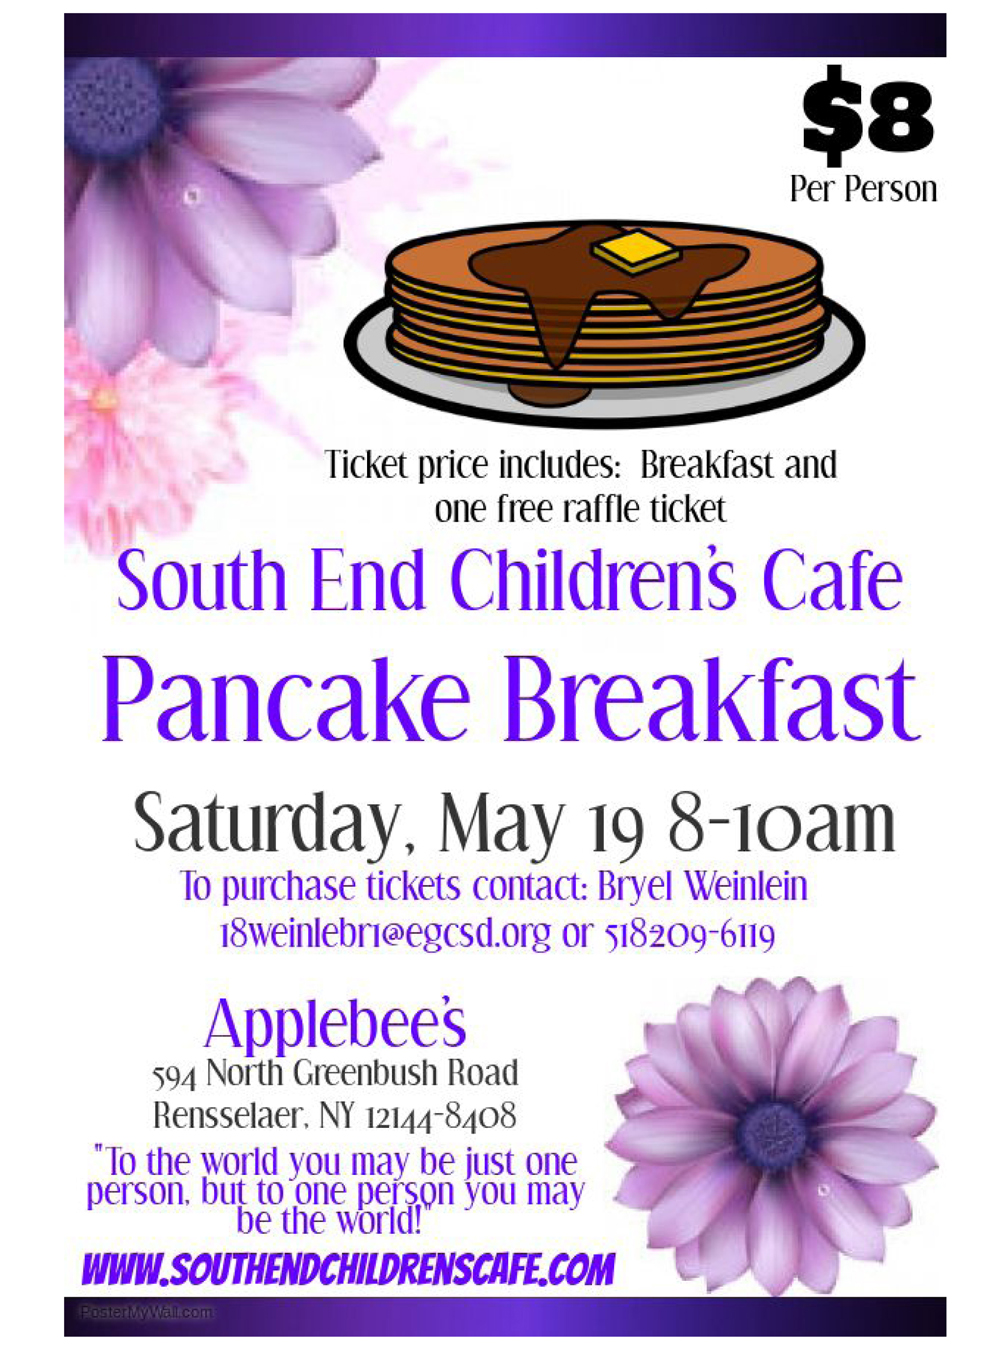 South End Childrens Cafe pancake breakfast web